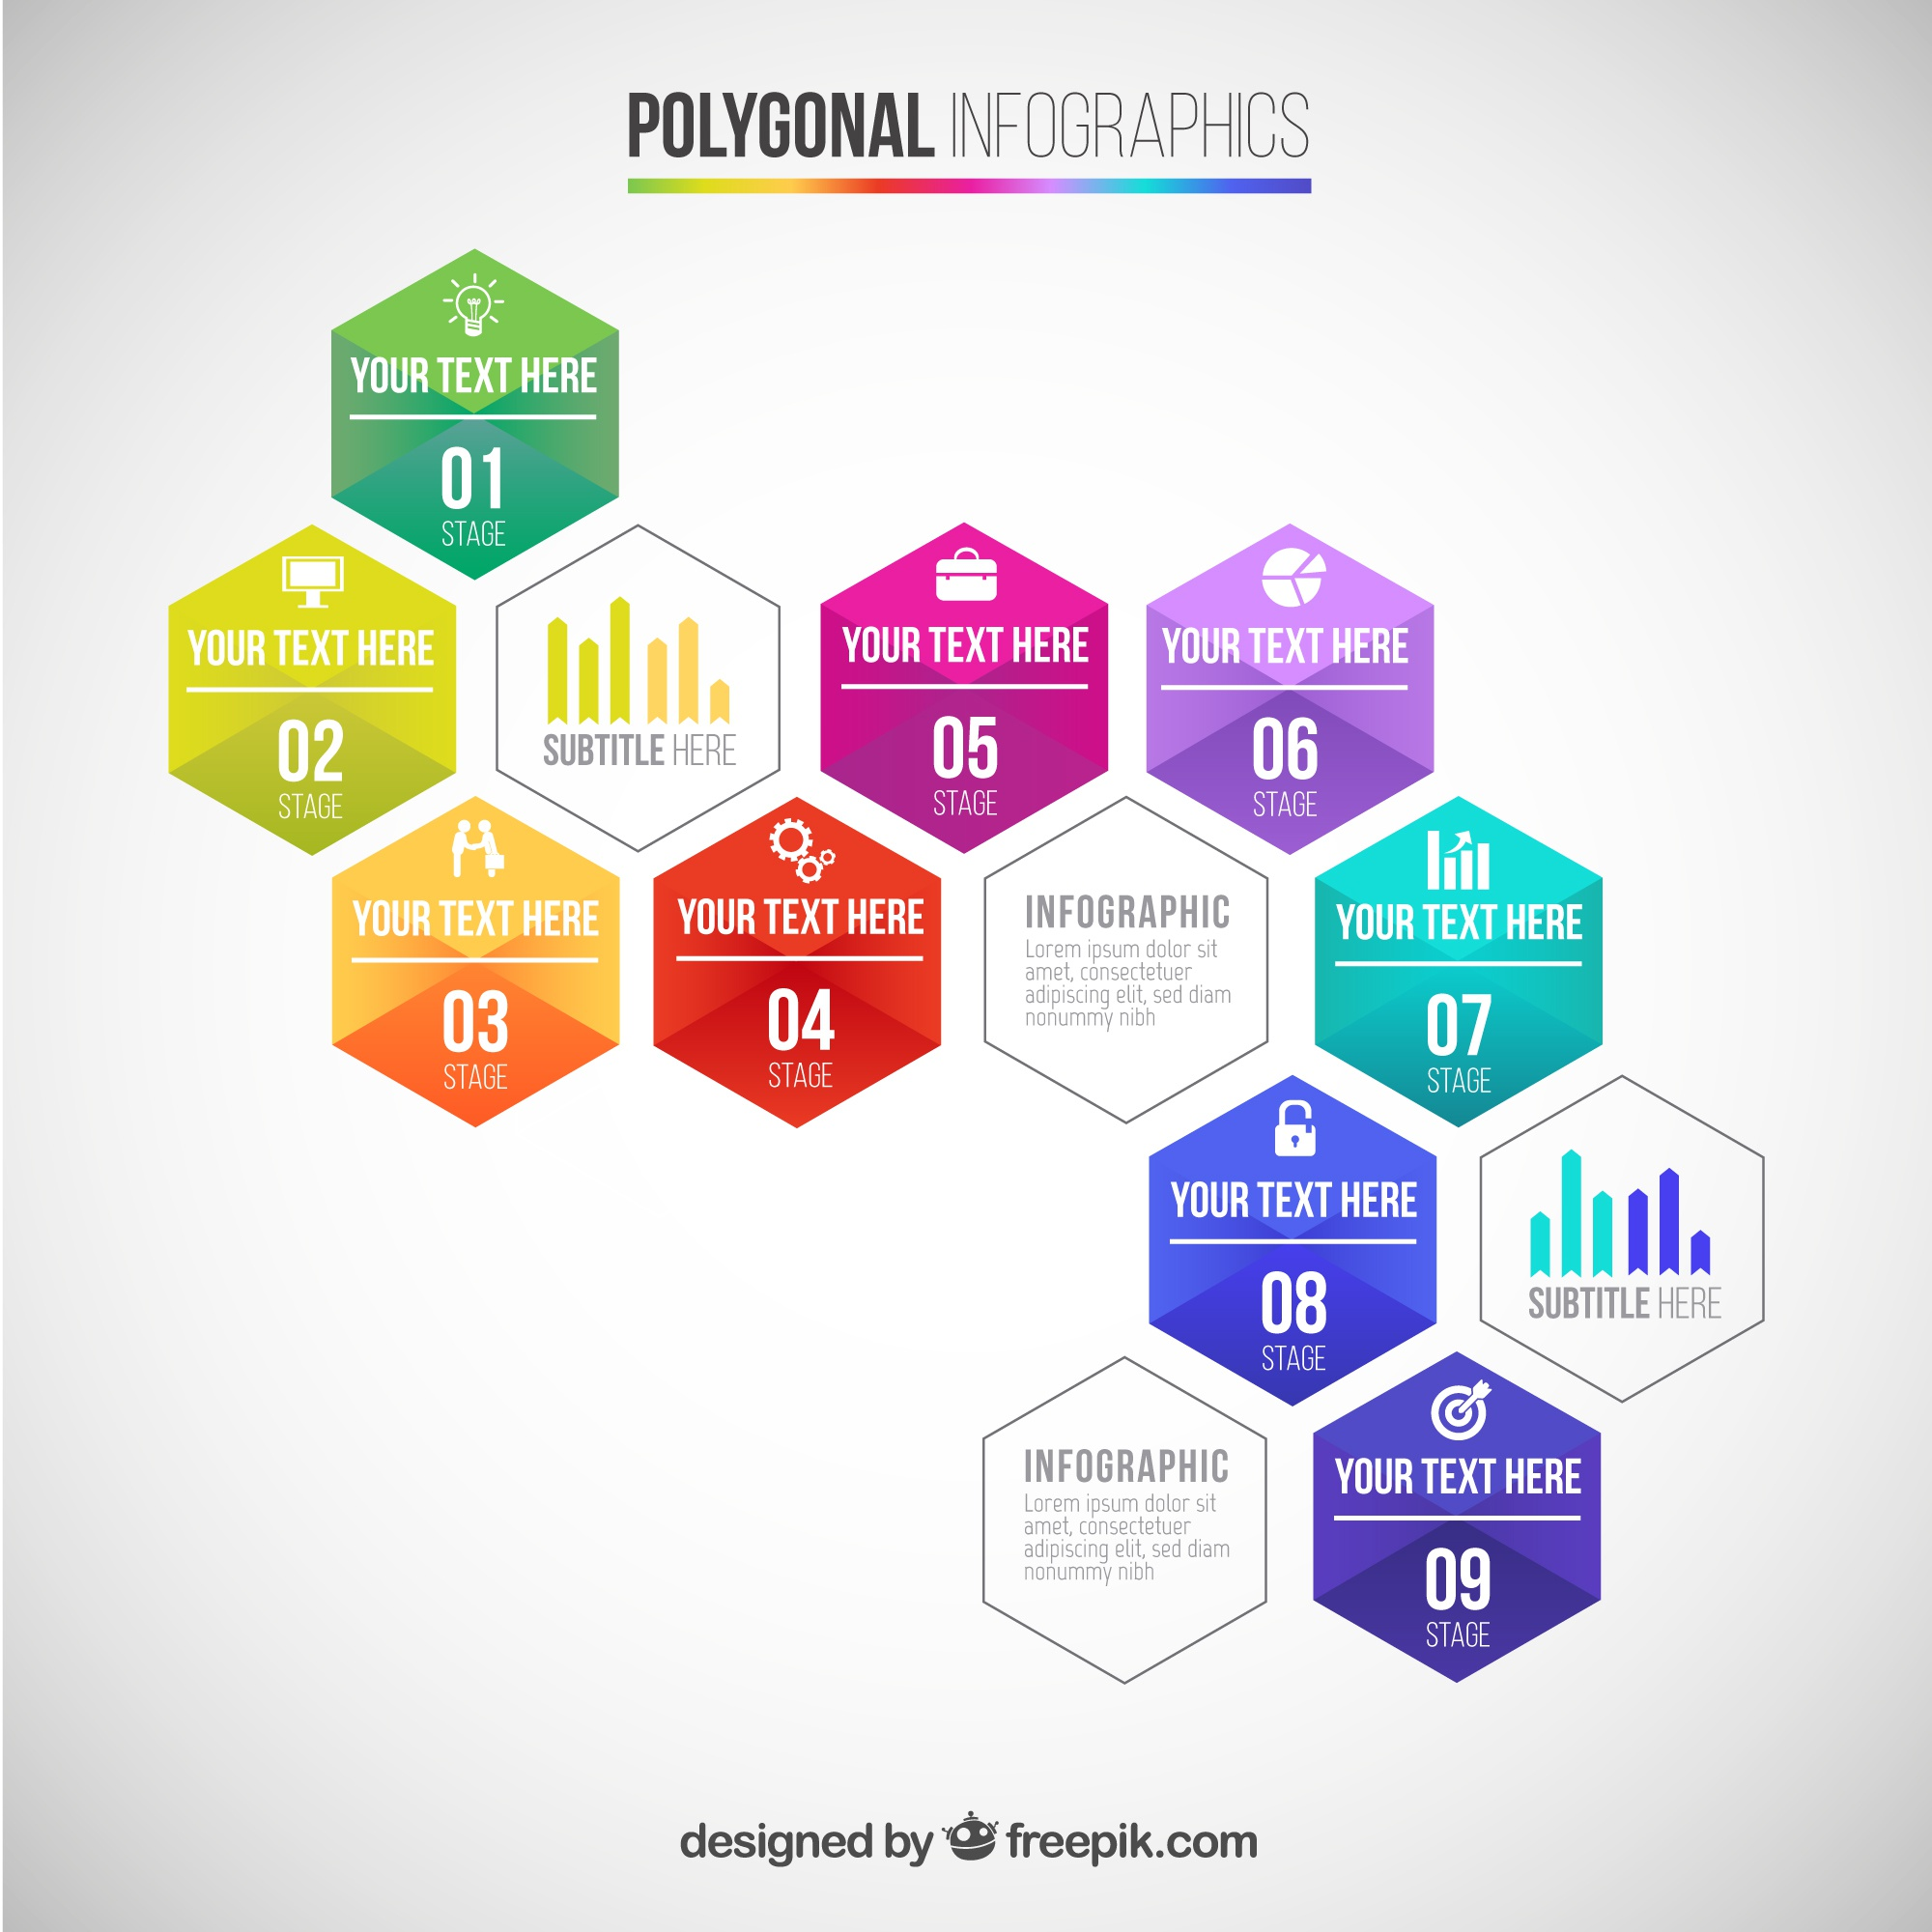 Polygon-Infografik